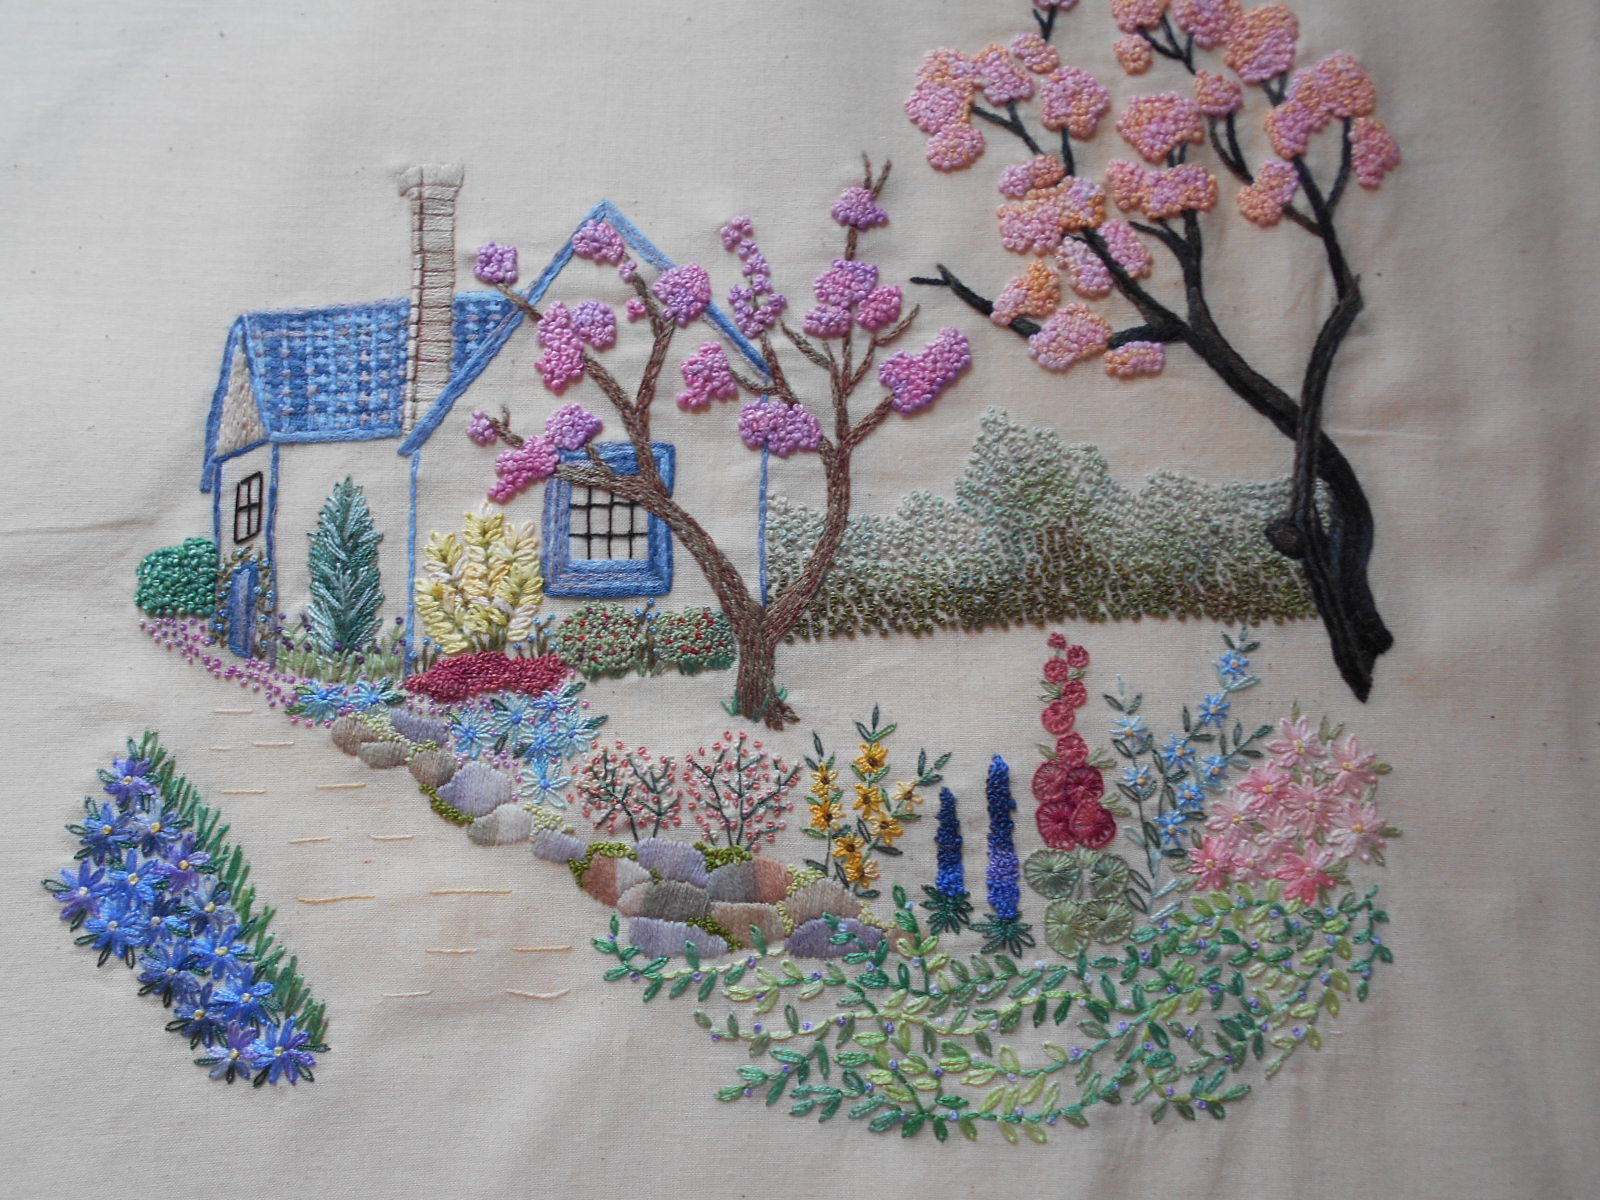 pinterest embroidery, Hayfield Cottage: Embroidered House and Flowers